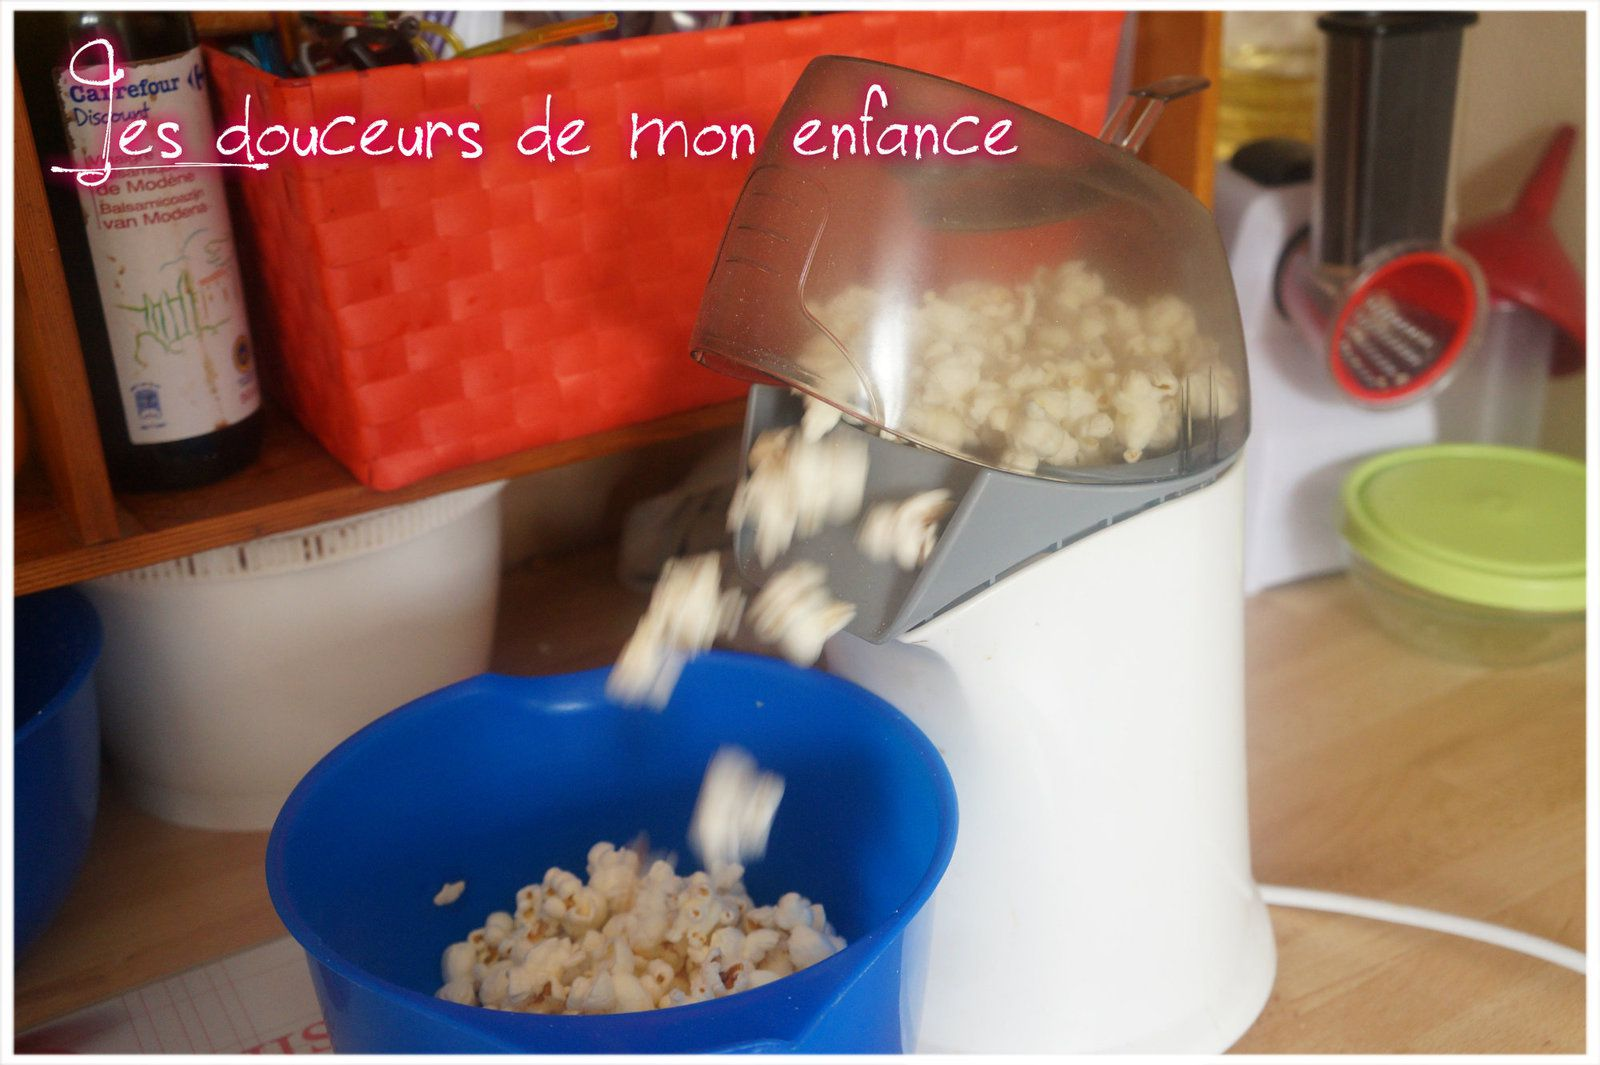 Mettre le mais à pop corn dans la machine